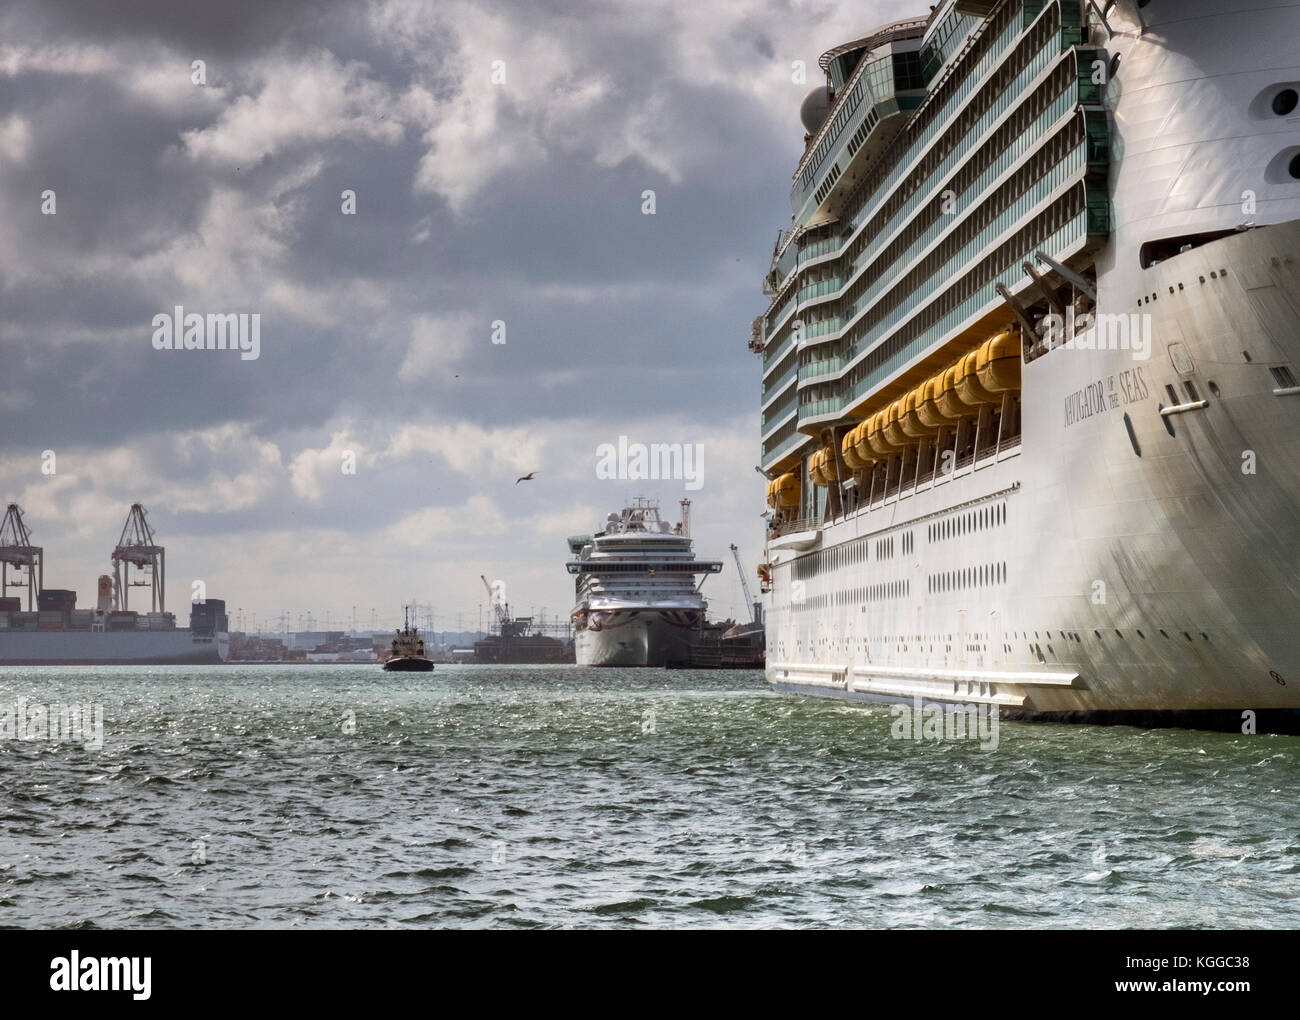 In dock, two Royal Caribbean passenger cruise ships, Southampton Water - Stock Image